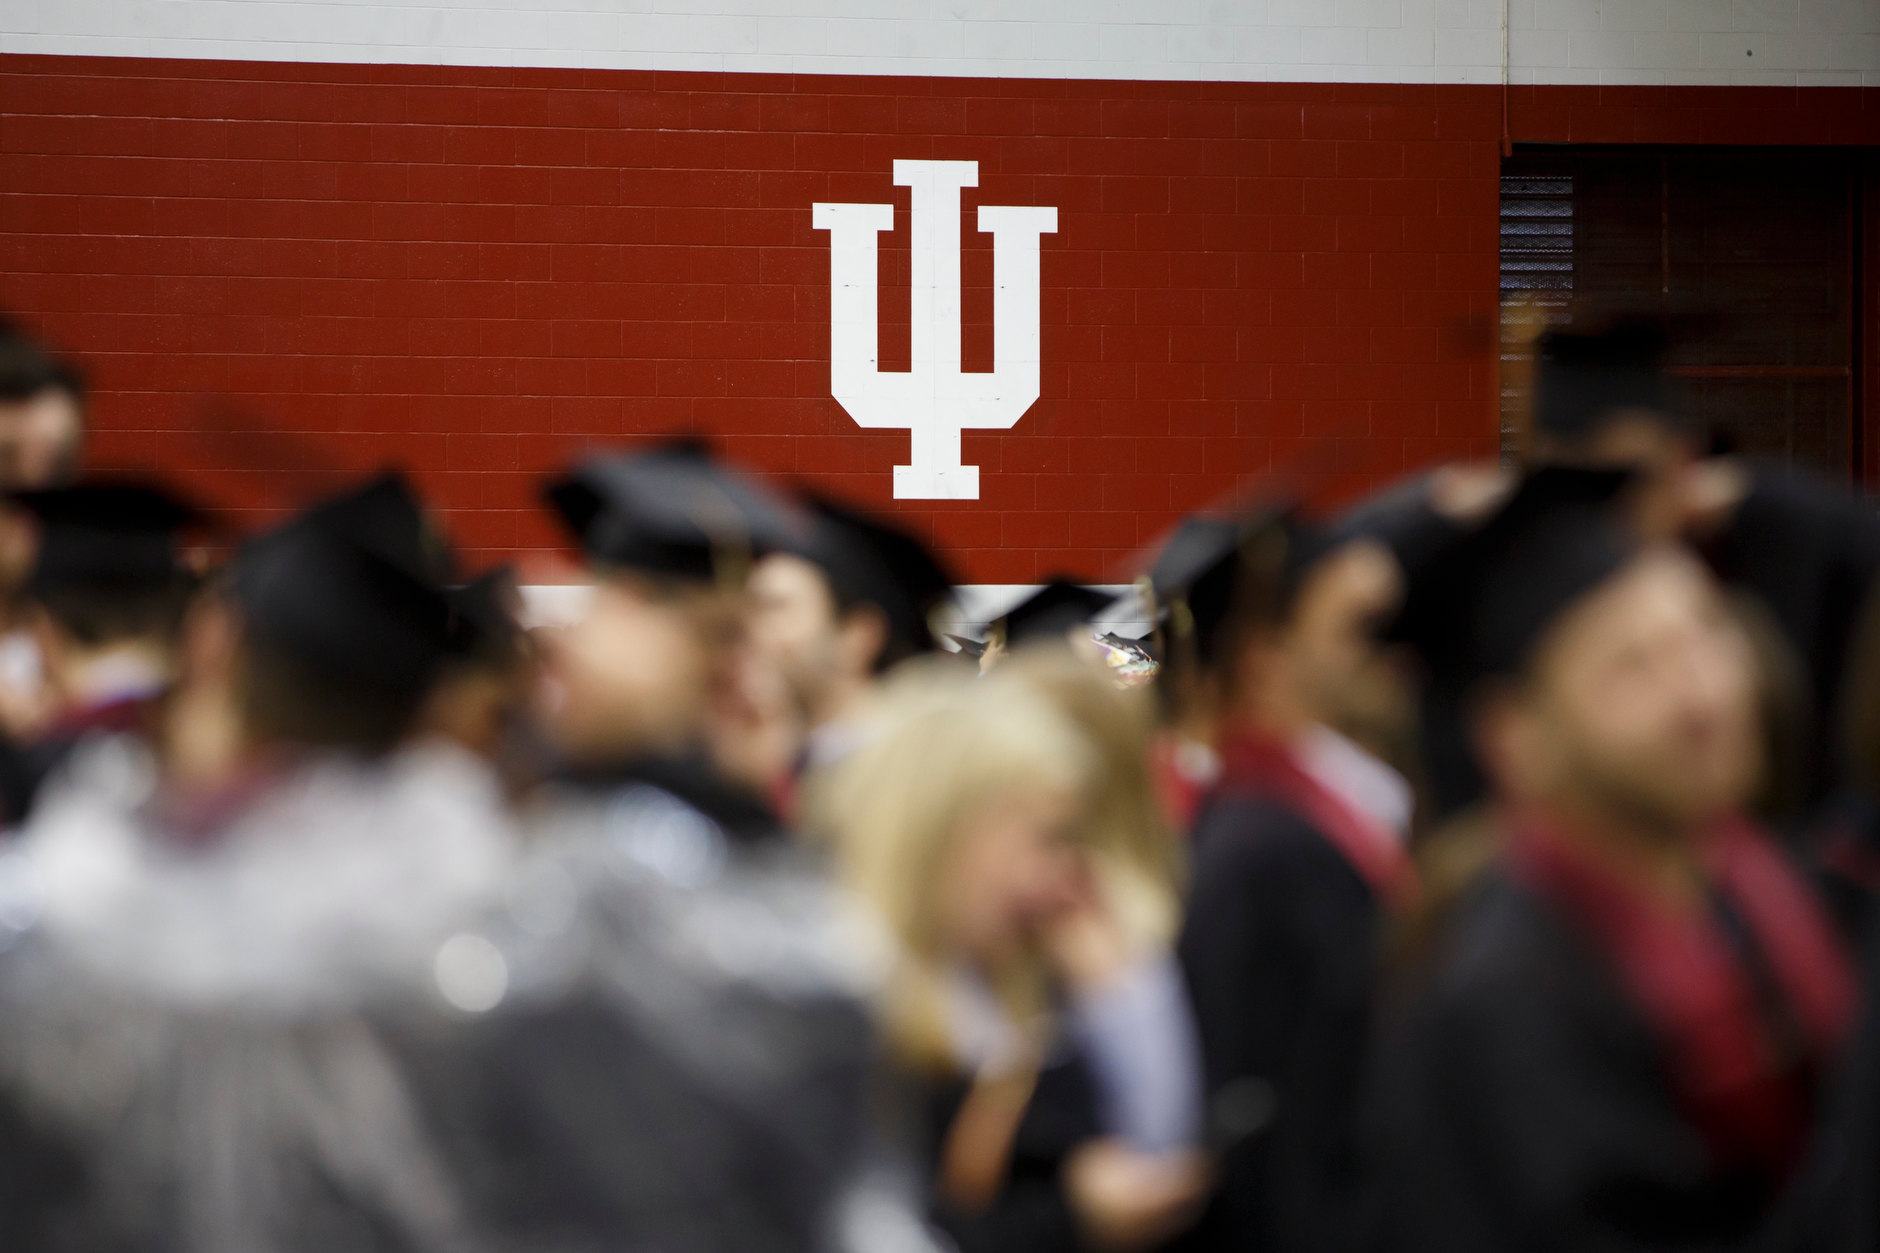 Graduates line up for the Indiana University Bloomington Undergraduate Commencement inside Mellencamp Pavilion on Saturday, May 4, 2019. (James Brosher/Indiana University)